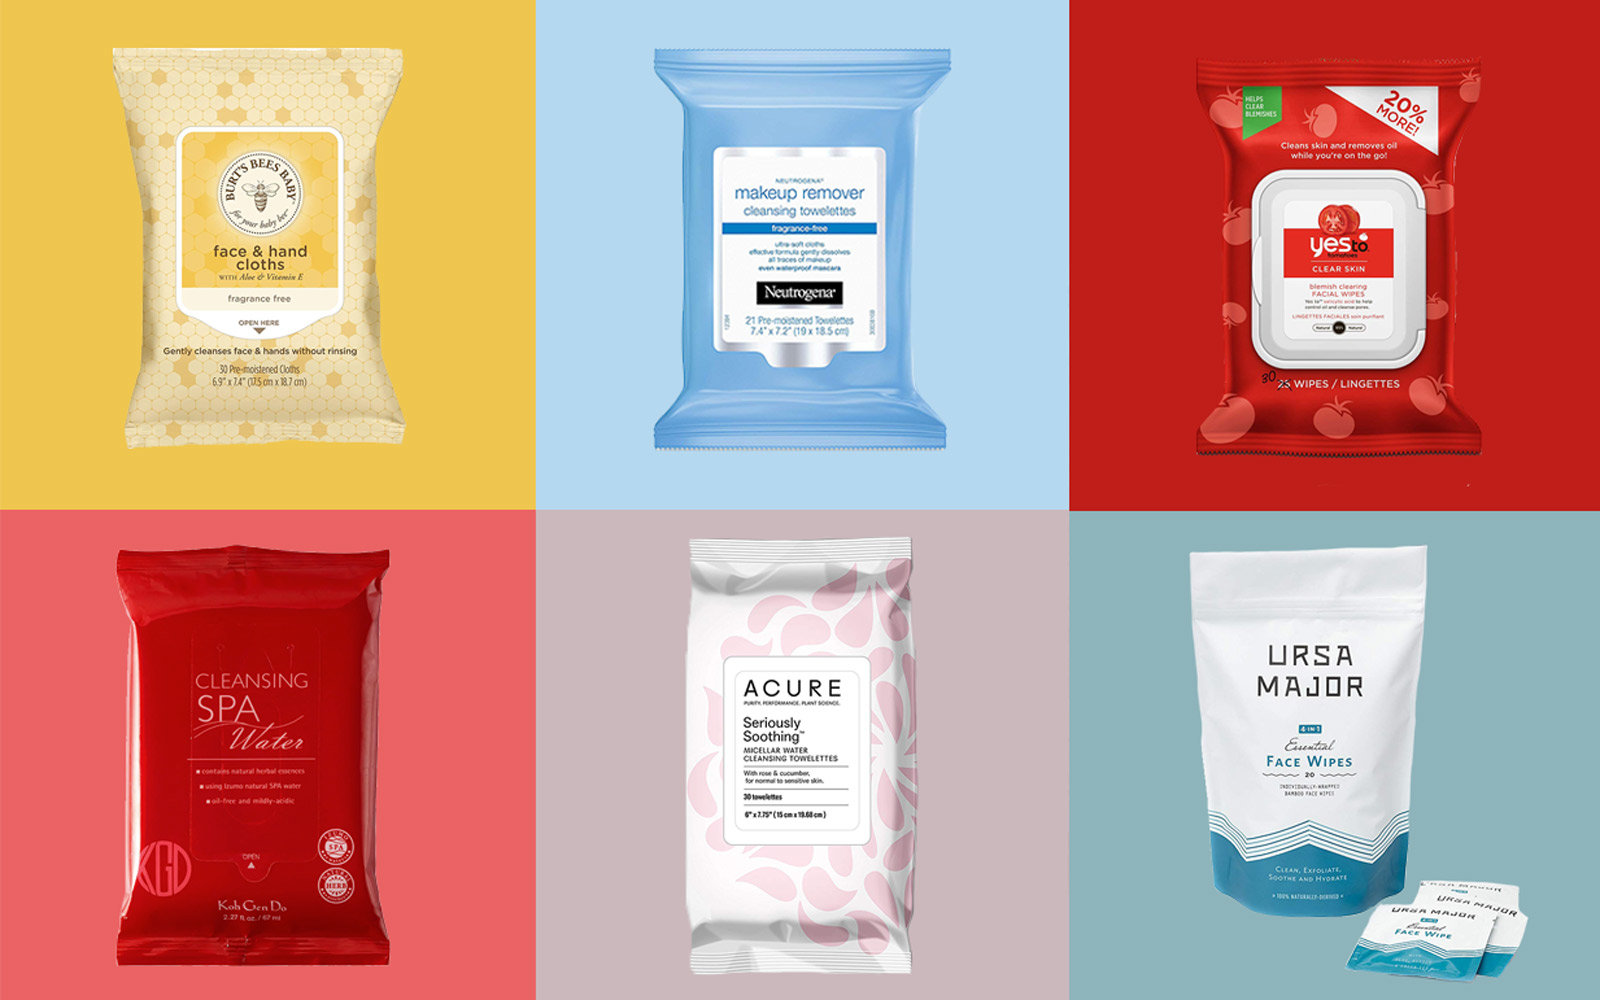 The Best Makeup Remover Wipes For Travel Travel Leisure